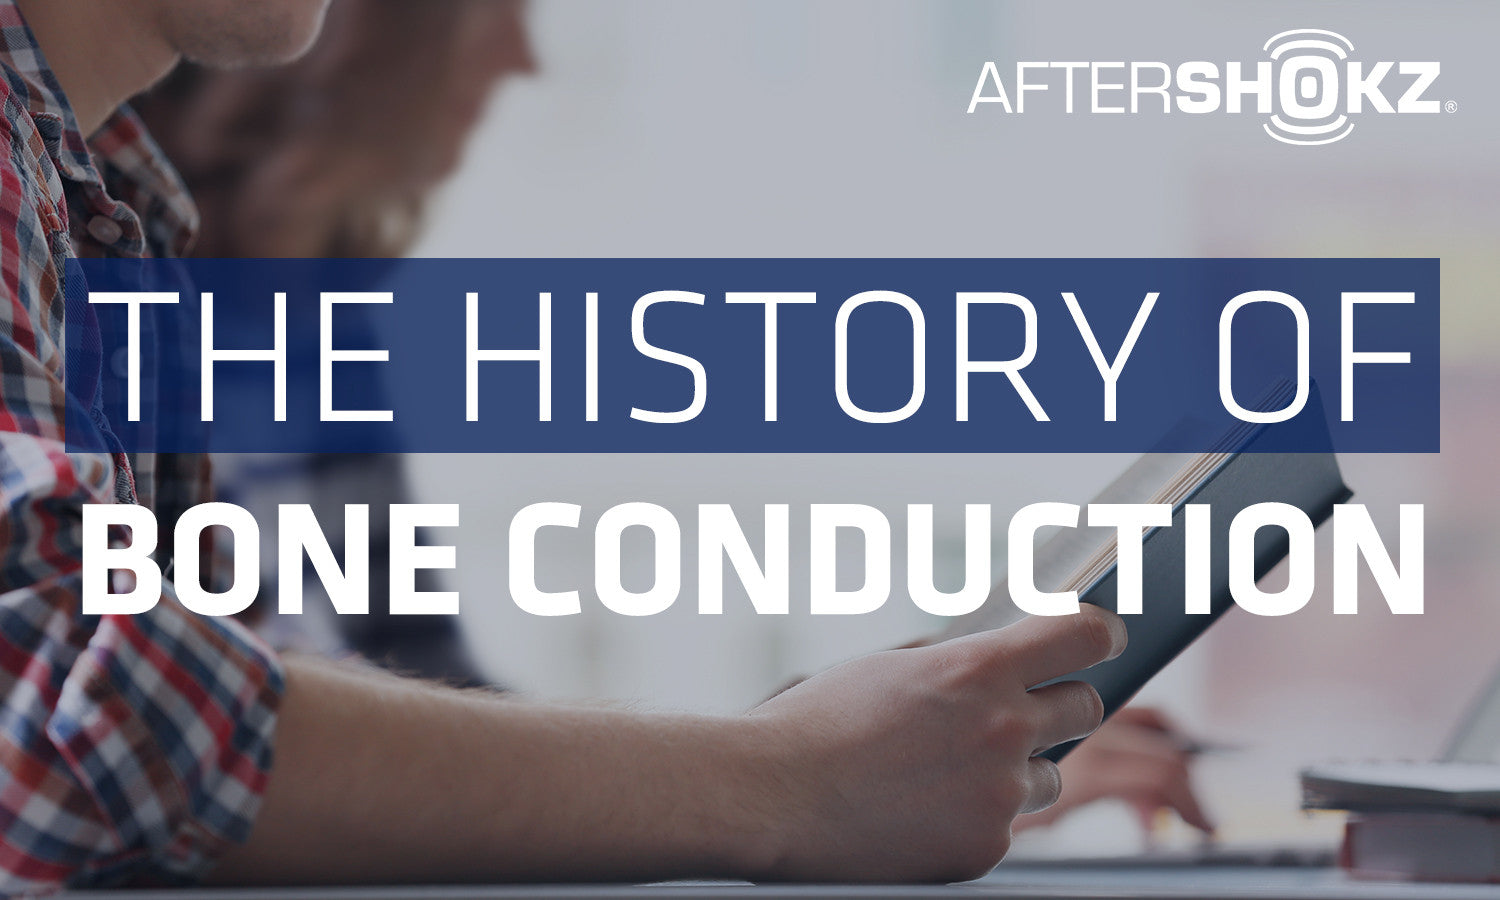 The History of Bone Conduction Technology